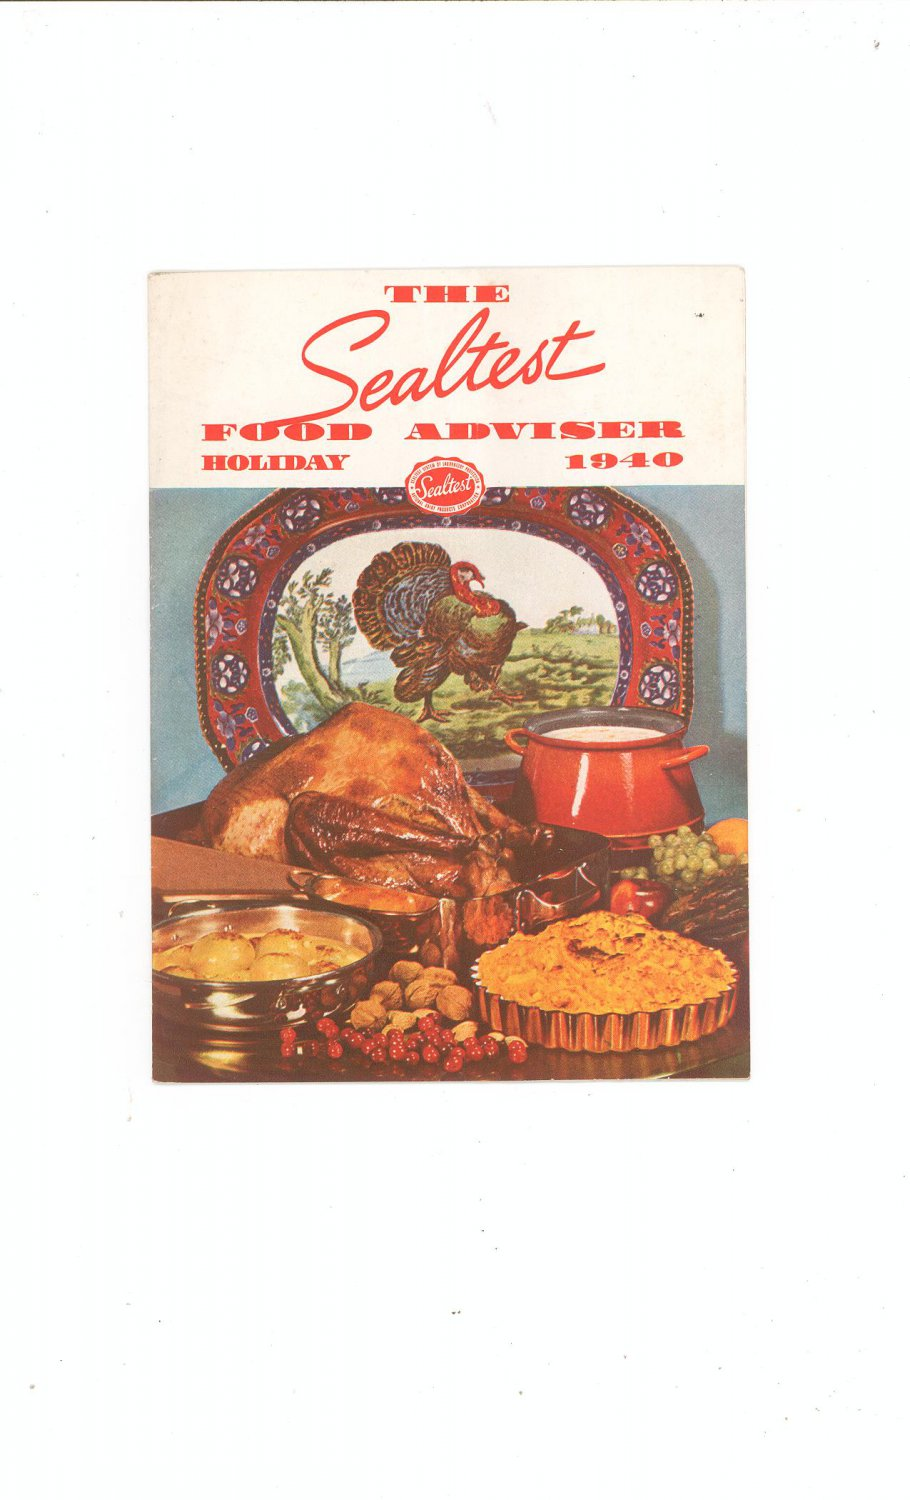 The Sealtest Food Adviser Holiday 1940 Cookbook Vintage